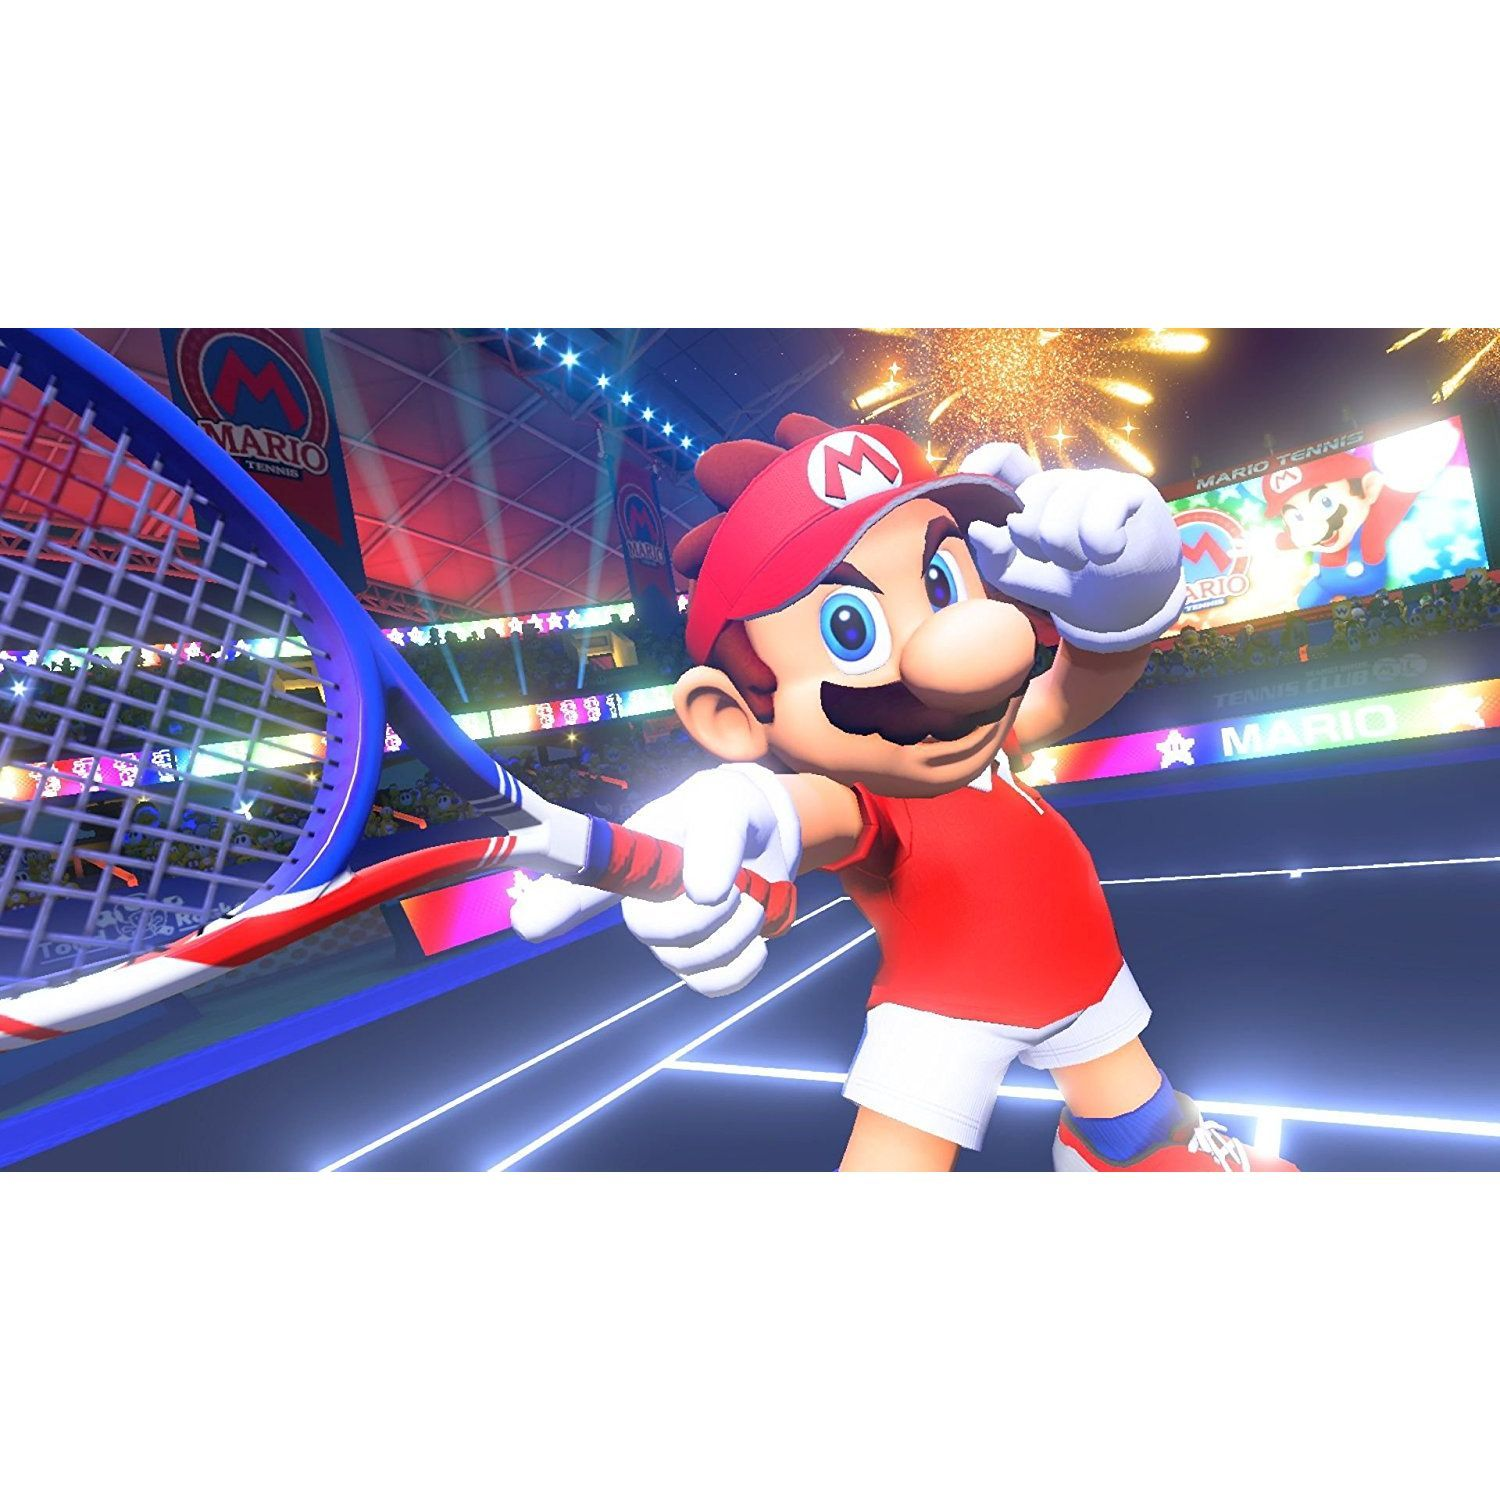 Mario Tennis Aces Nsw Hd Shopgr Switch English Us Games